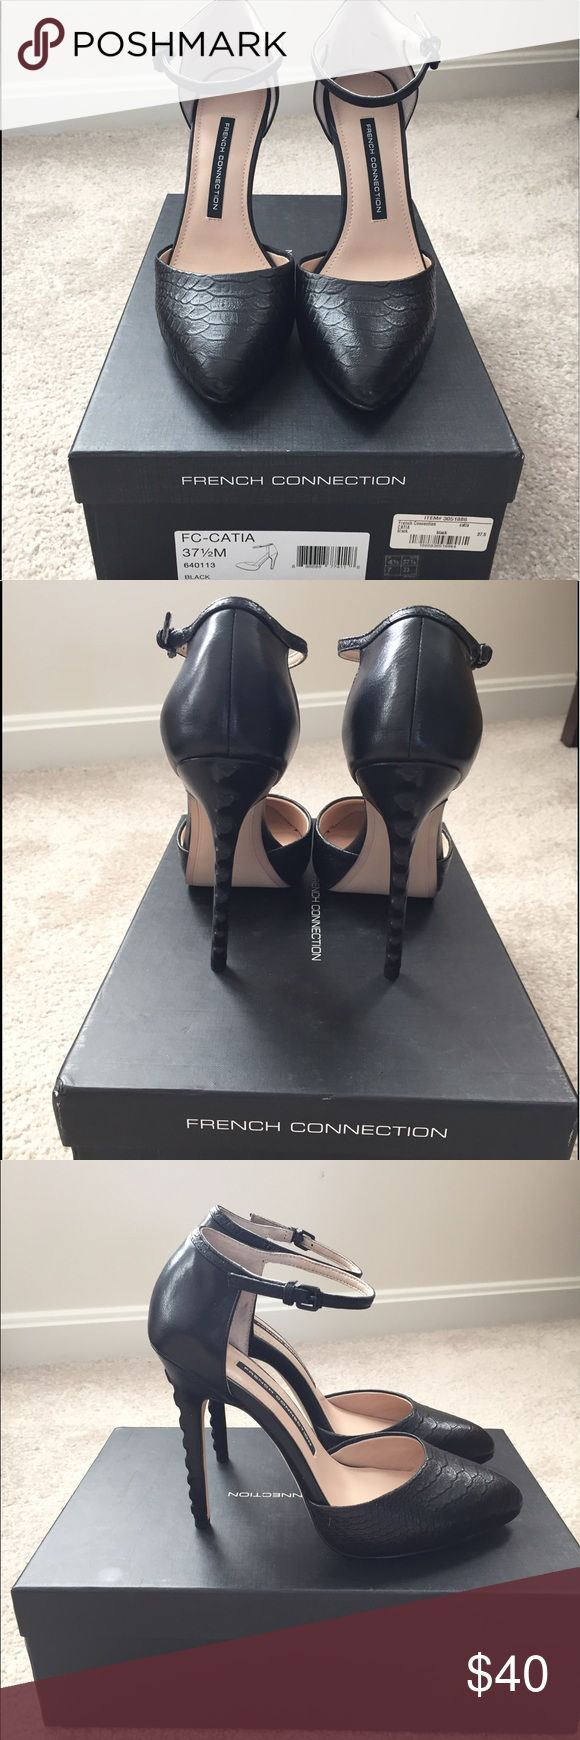 French Connection Ankle Strap Pumps Sexy black French Connection shoes. Brand new in box! French Connection Shoes Heels